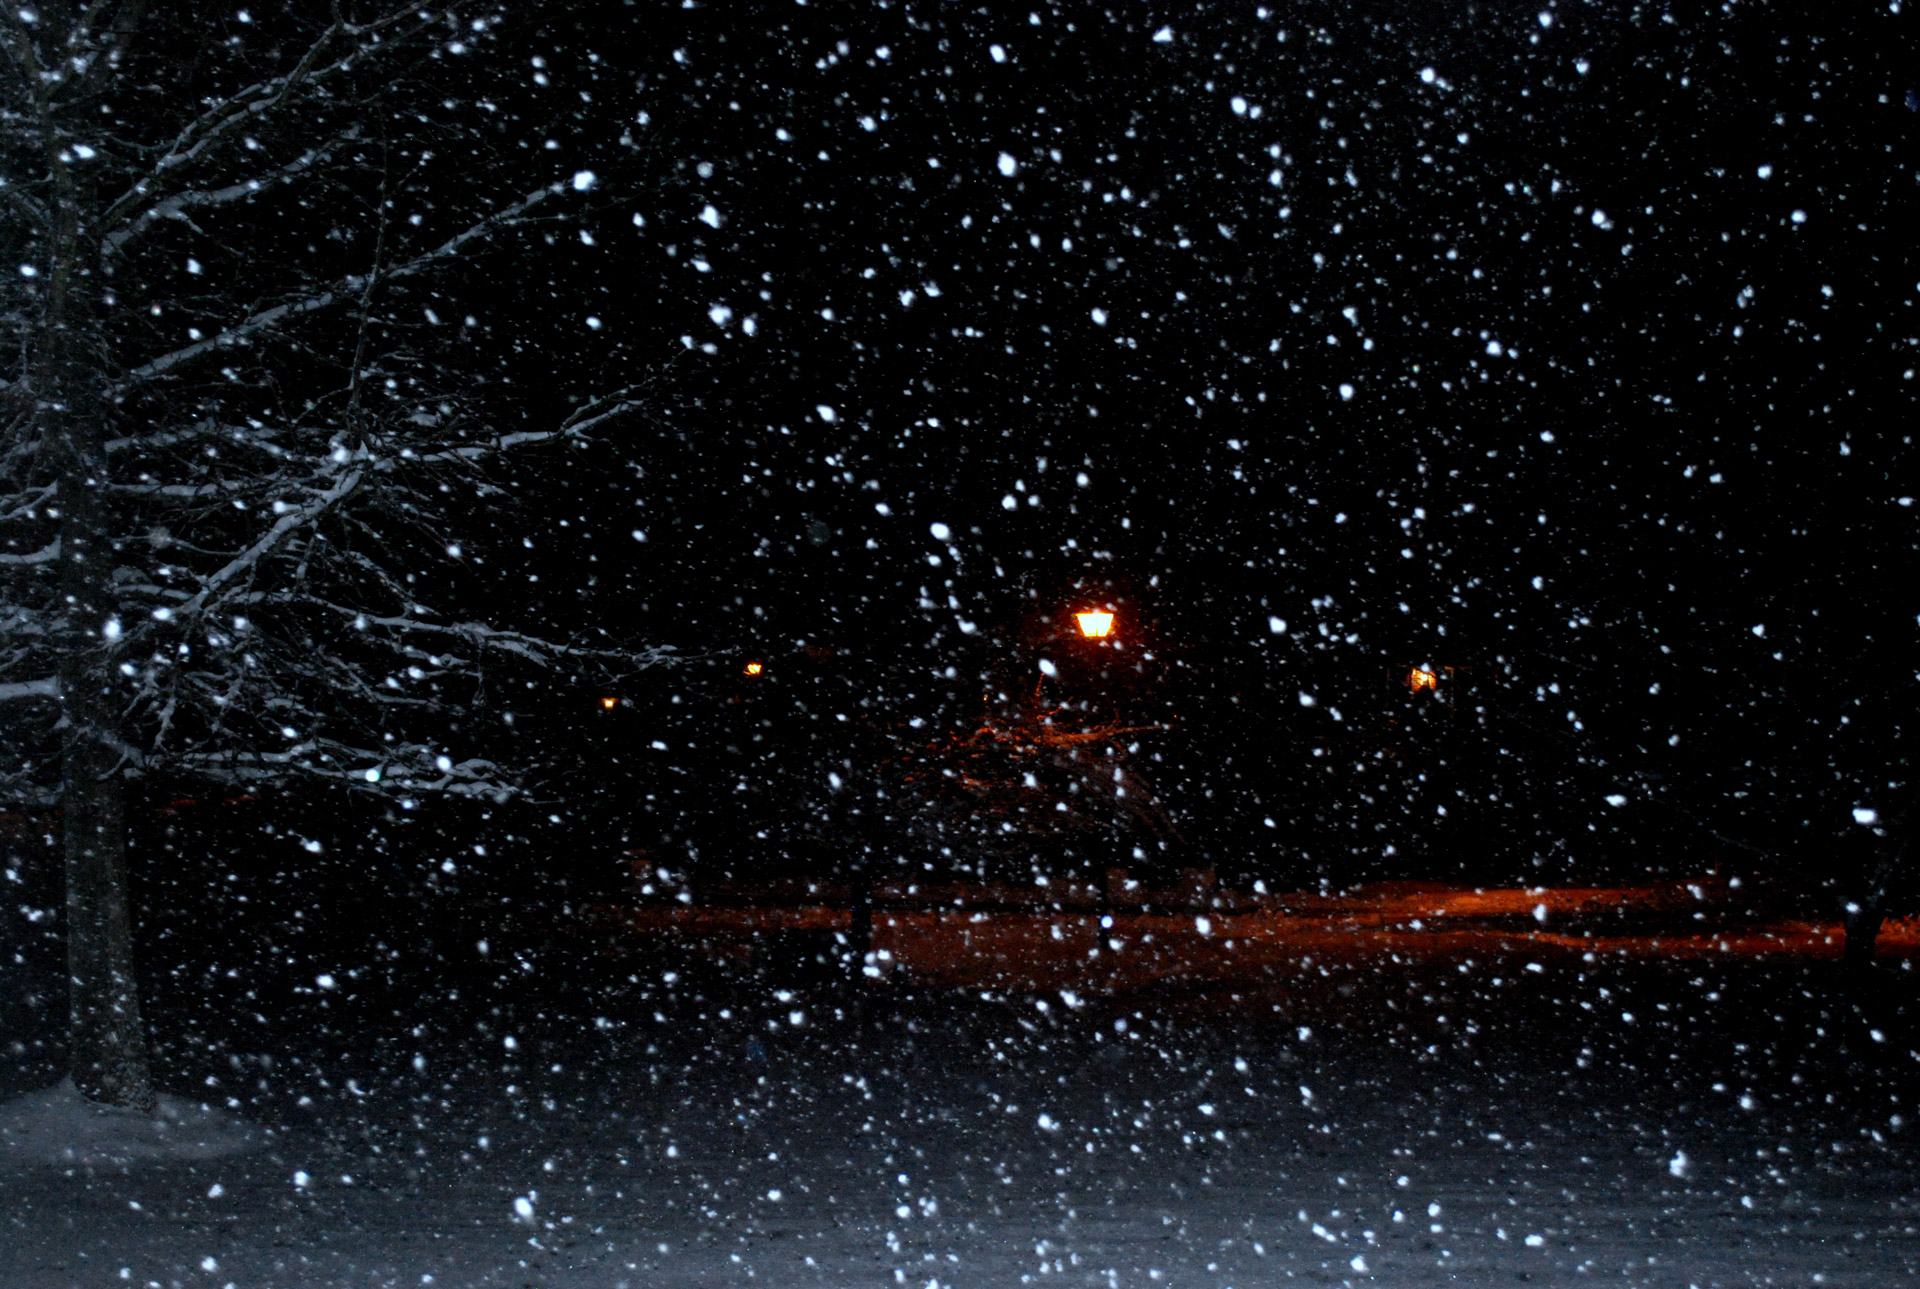 Christmas Falling Snow Wallpaper Note 3 Night Snow Free Stock Photo Public Domain Pictures